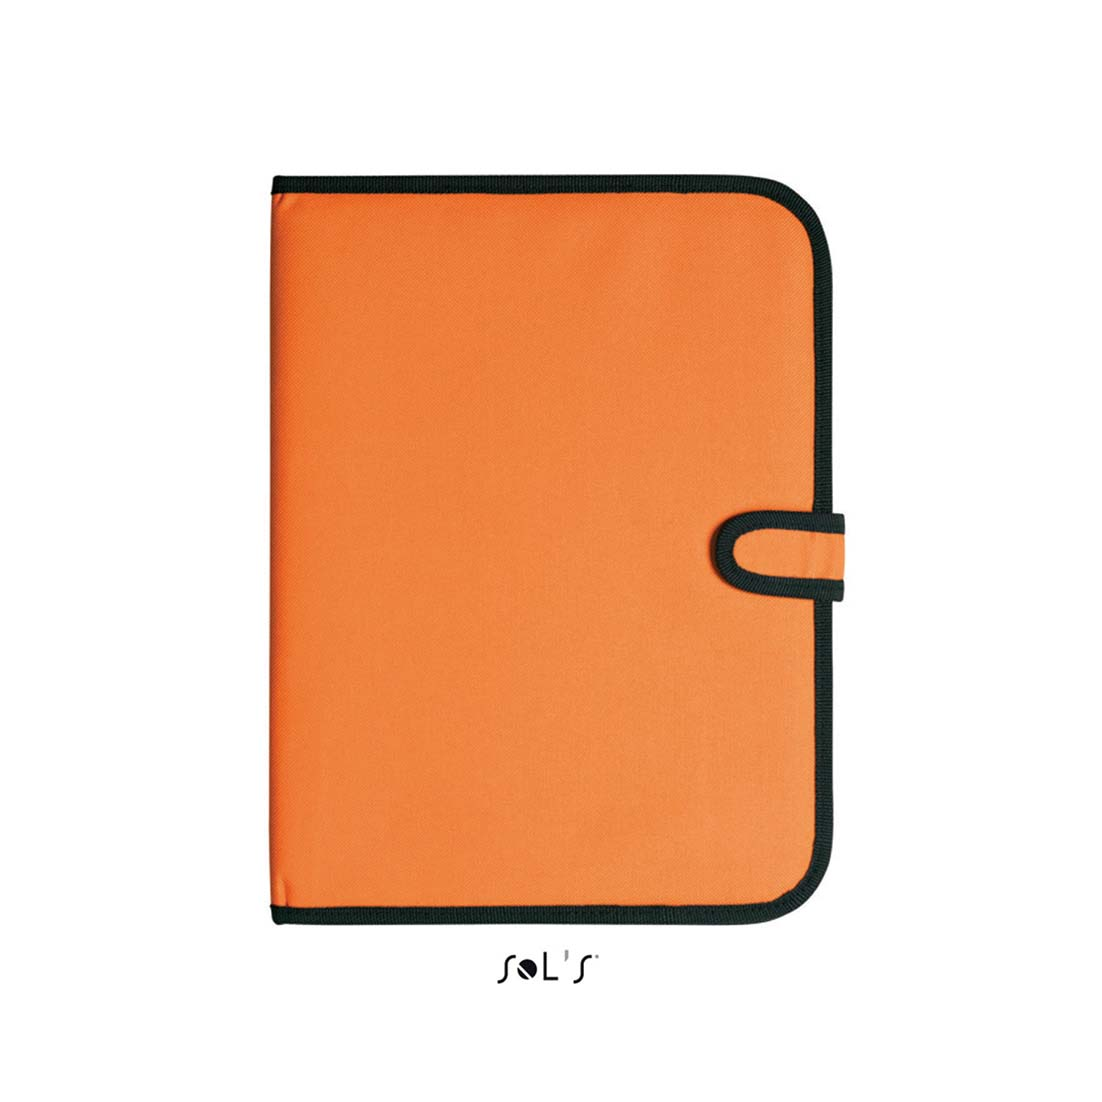 A4 conference folder with notepad - orange sol-73300 or